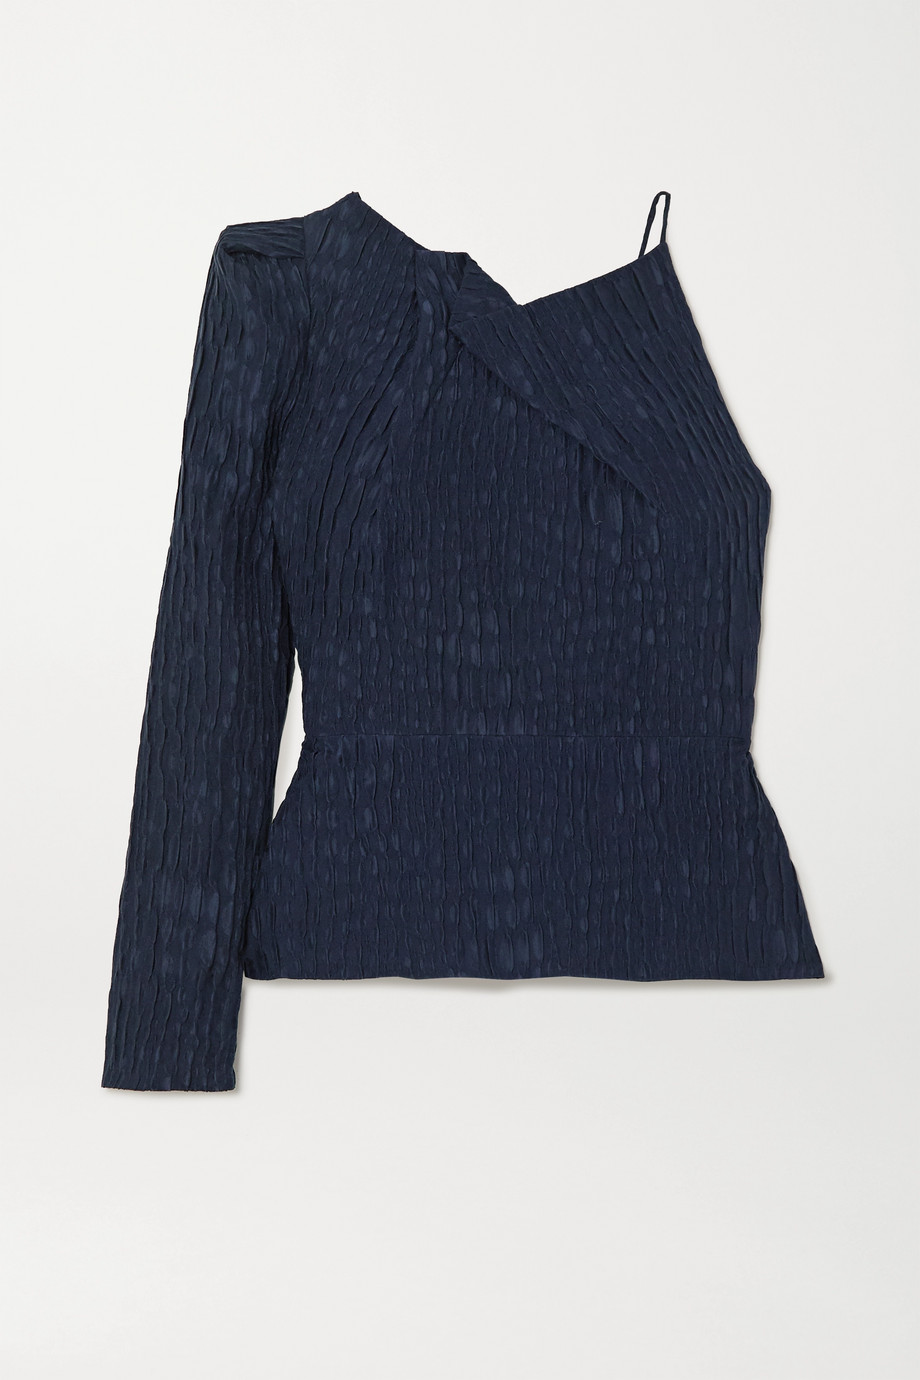 Roland Mouret Bryant one-sleeve gathered silk-jacquard top